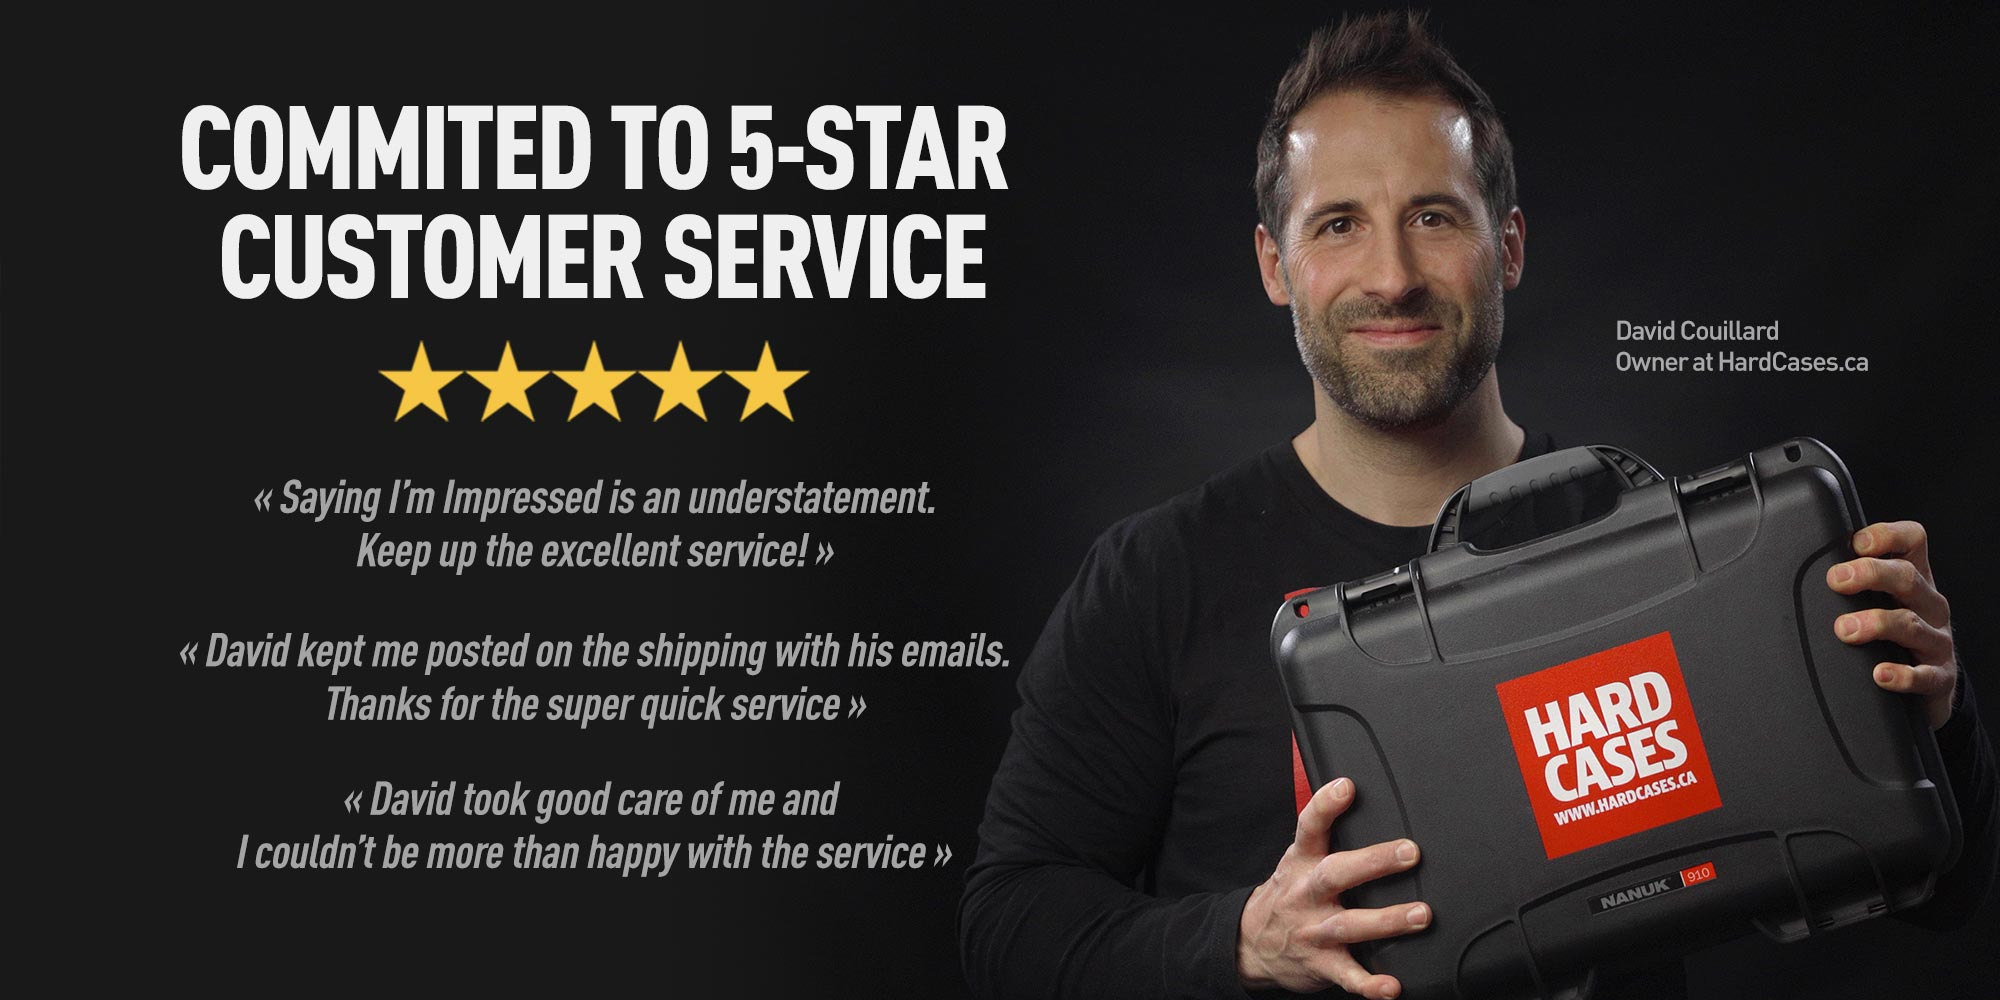 Hardcases.ca is committed to 5-Star Service